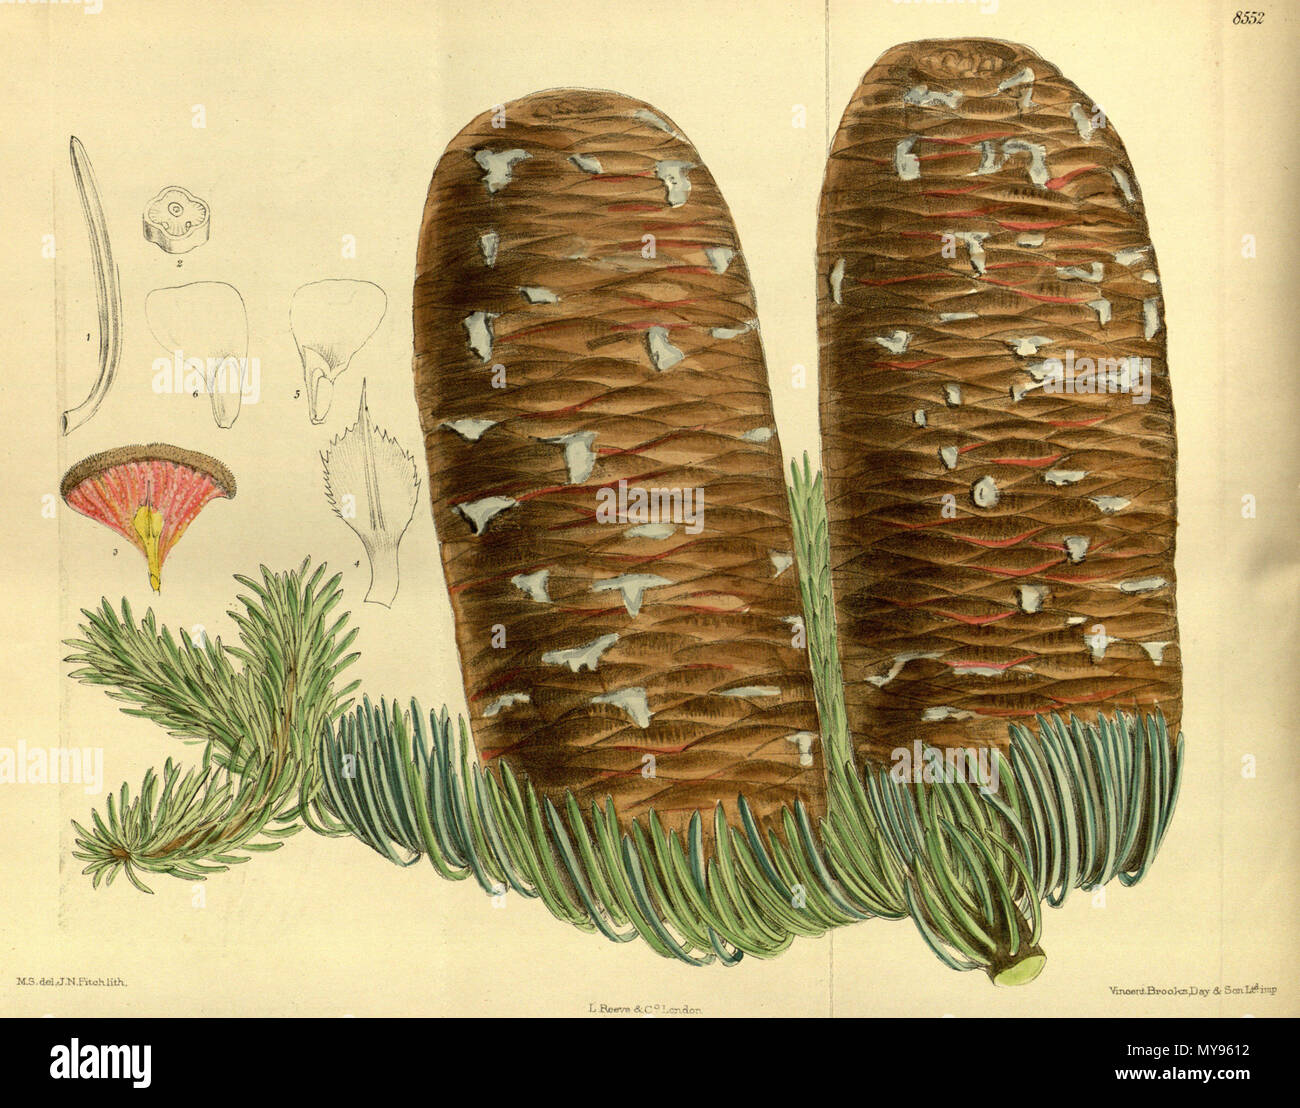 . Abies magnifica, Pinaceae . 1914. M.S. del., J.N.Fitch lith. 21 Abies magnifica 140-8552 - Stock Image